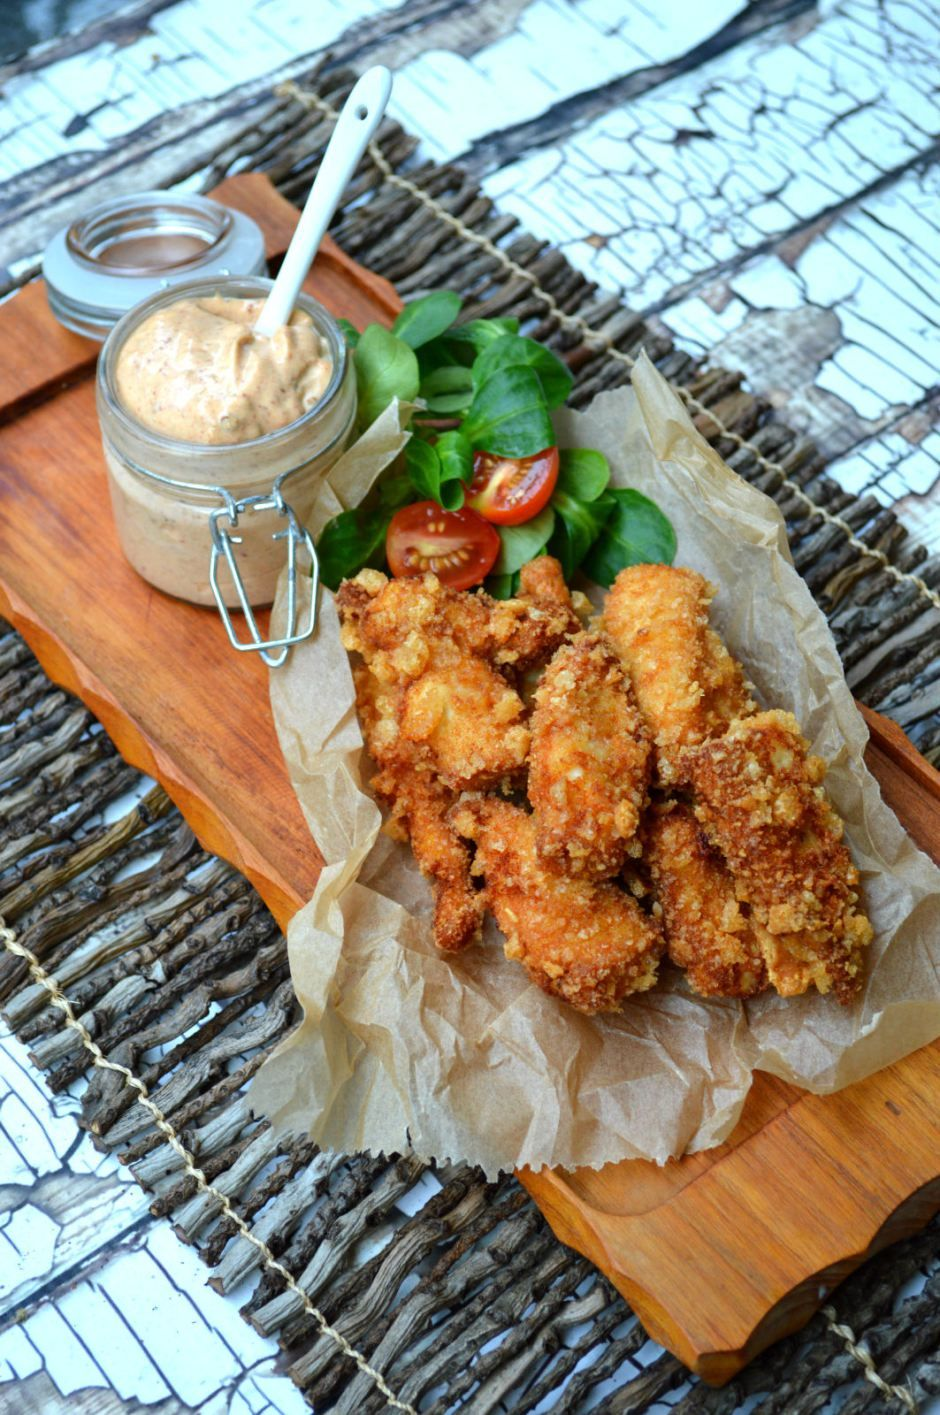 Low carb paleo friendly fried chicken brined in pickle